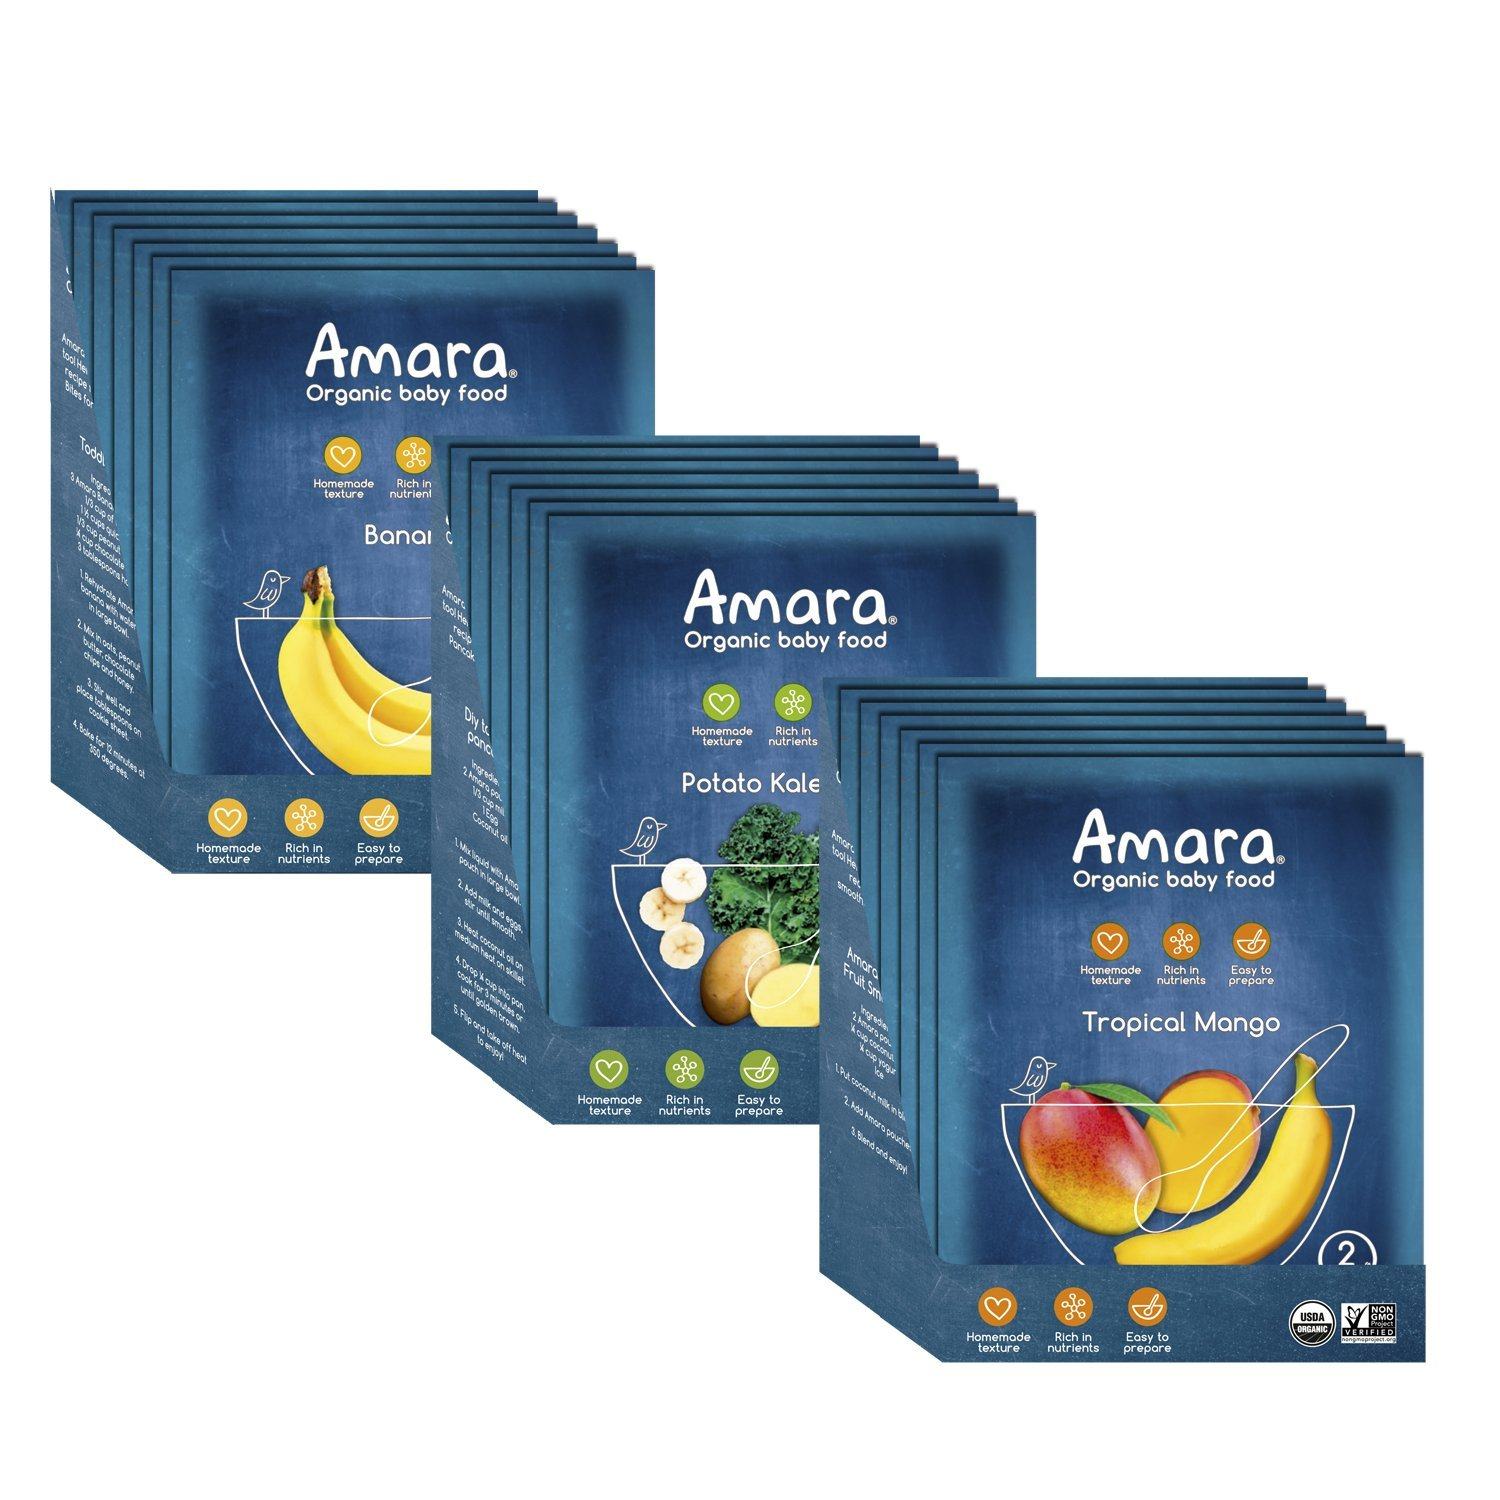 Amara Baby Food, Introduction to Solids, Healthy Baby & Infant Food, Organic Fruits and Veggies for Baby's First Meals - Banana, Potato & Kale, Tropical Mango (21 Pouches)